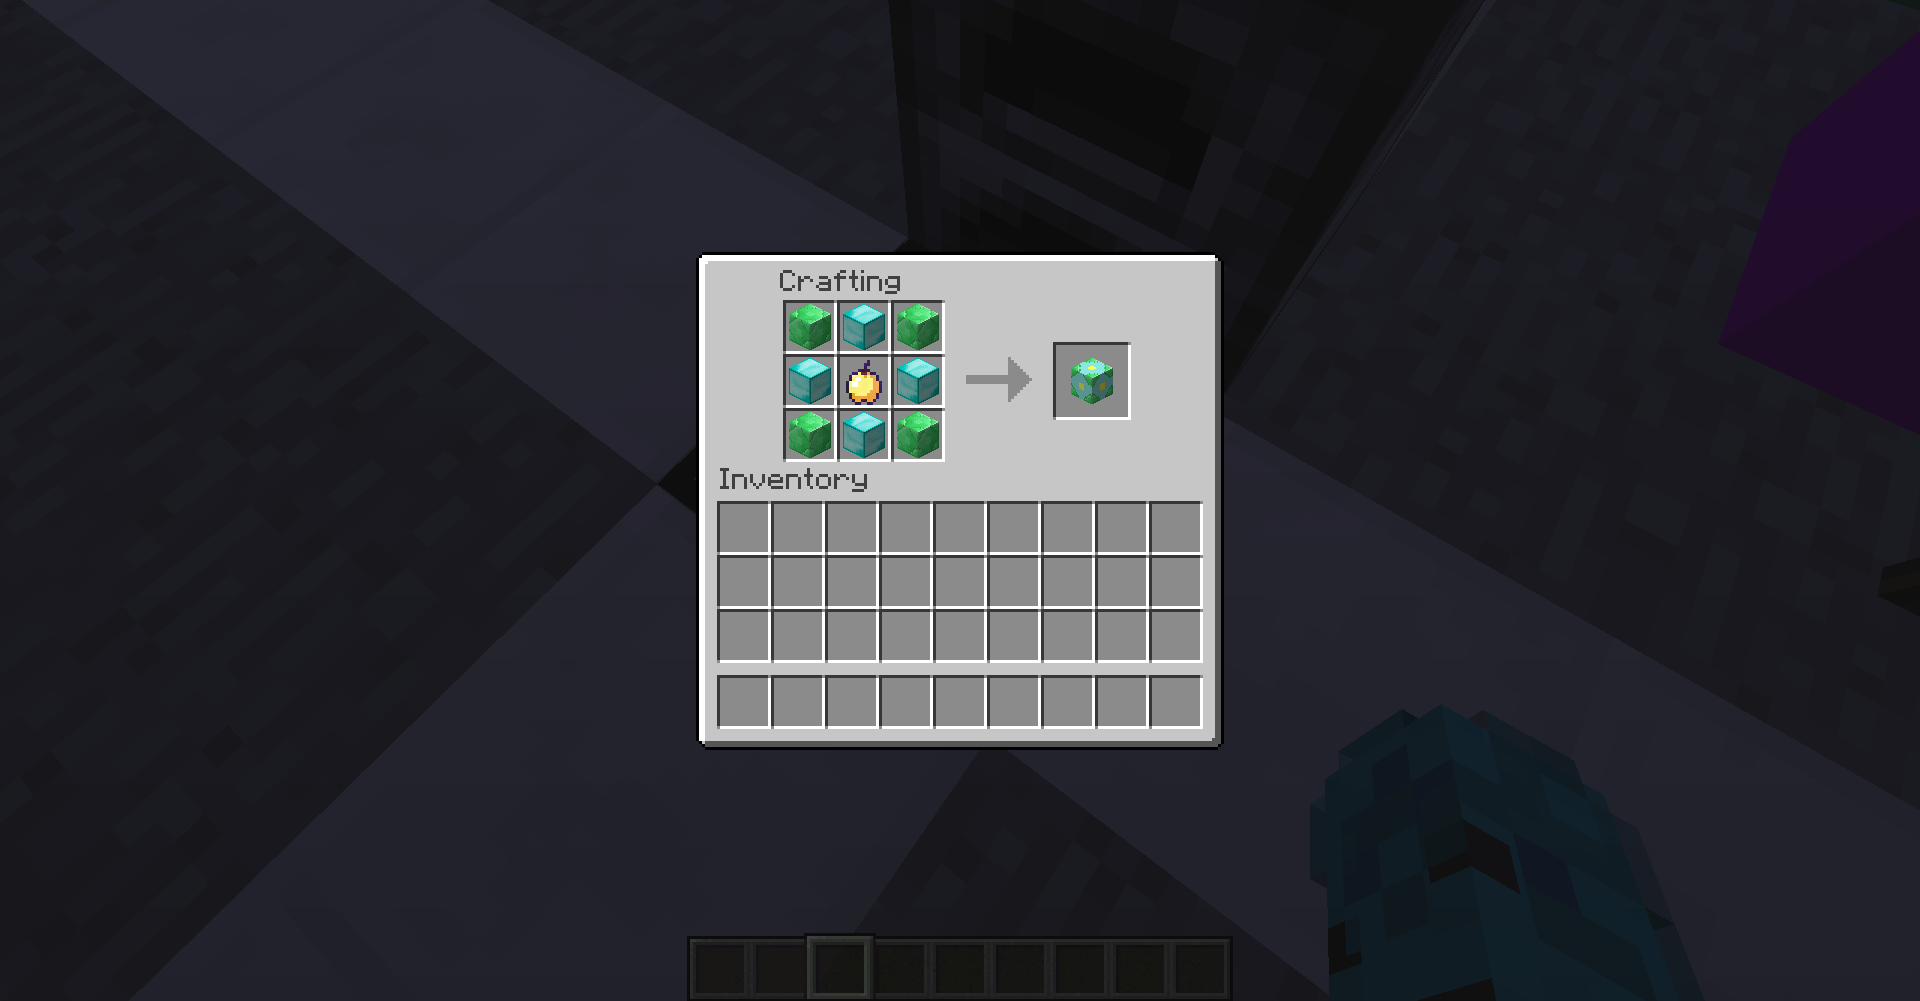 heaven-and-hell-mod-crafting-recipes-4.png